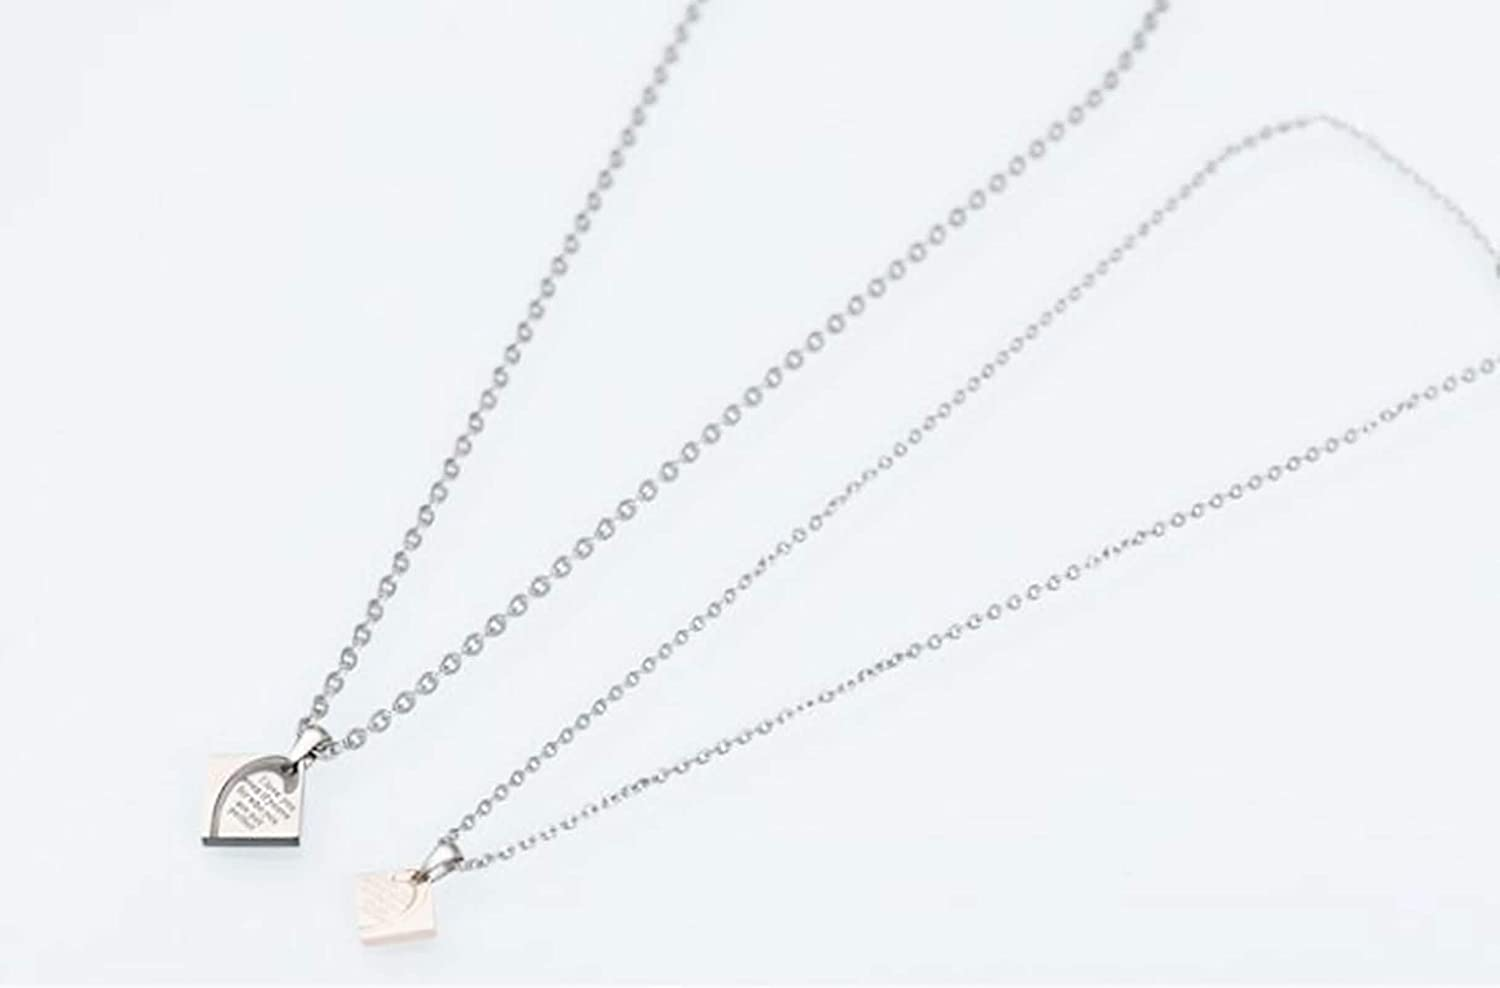 MoAndy Necklace Chain Stainless Steel Unisex Adults Pendant Necklaces Square Love Spelling Letter